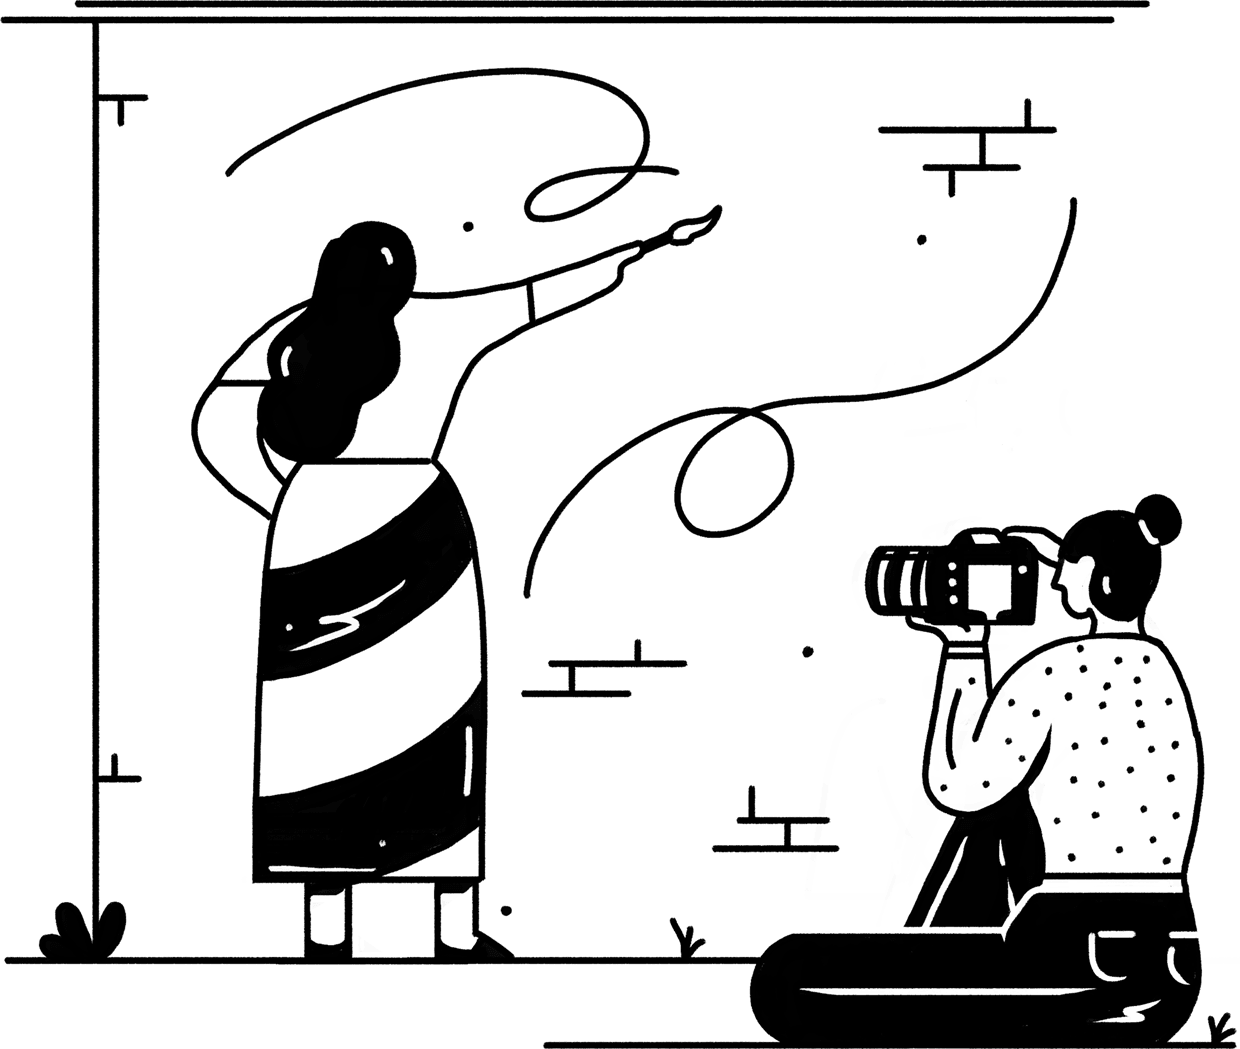 hand drawn line icon of artist painting a mural while a photographer takes a picture of her working